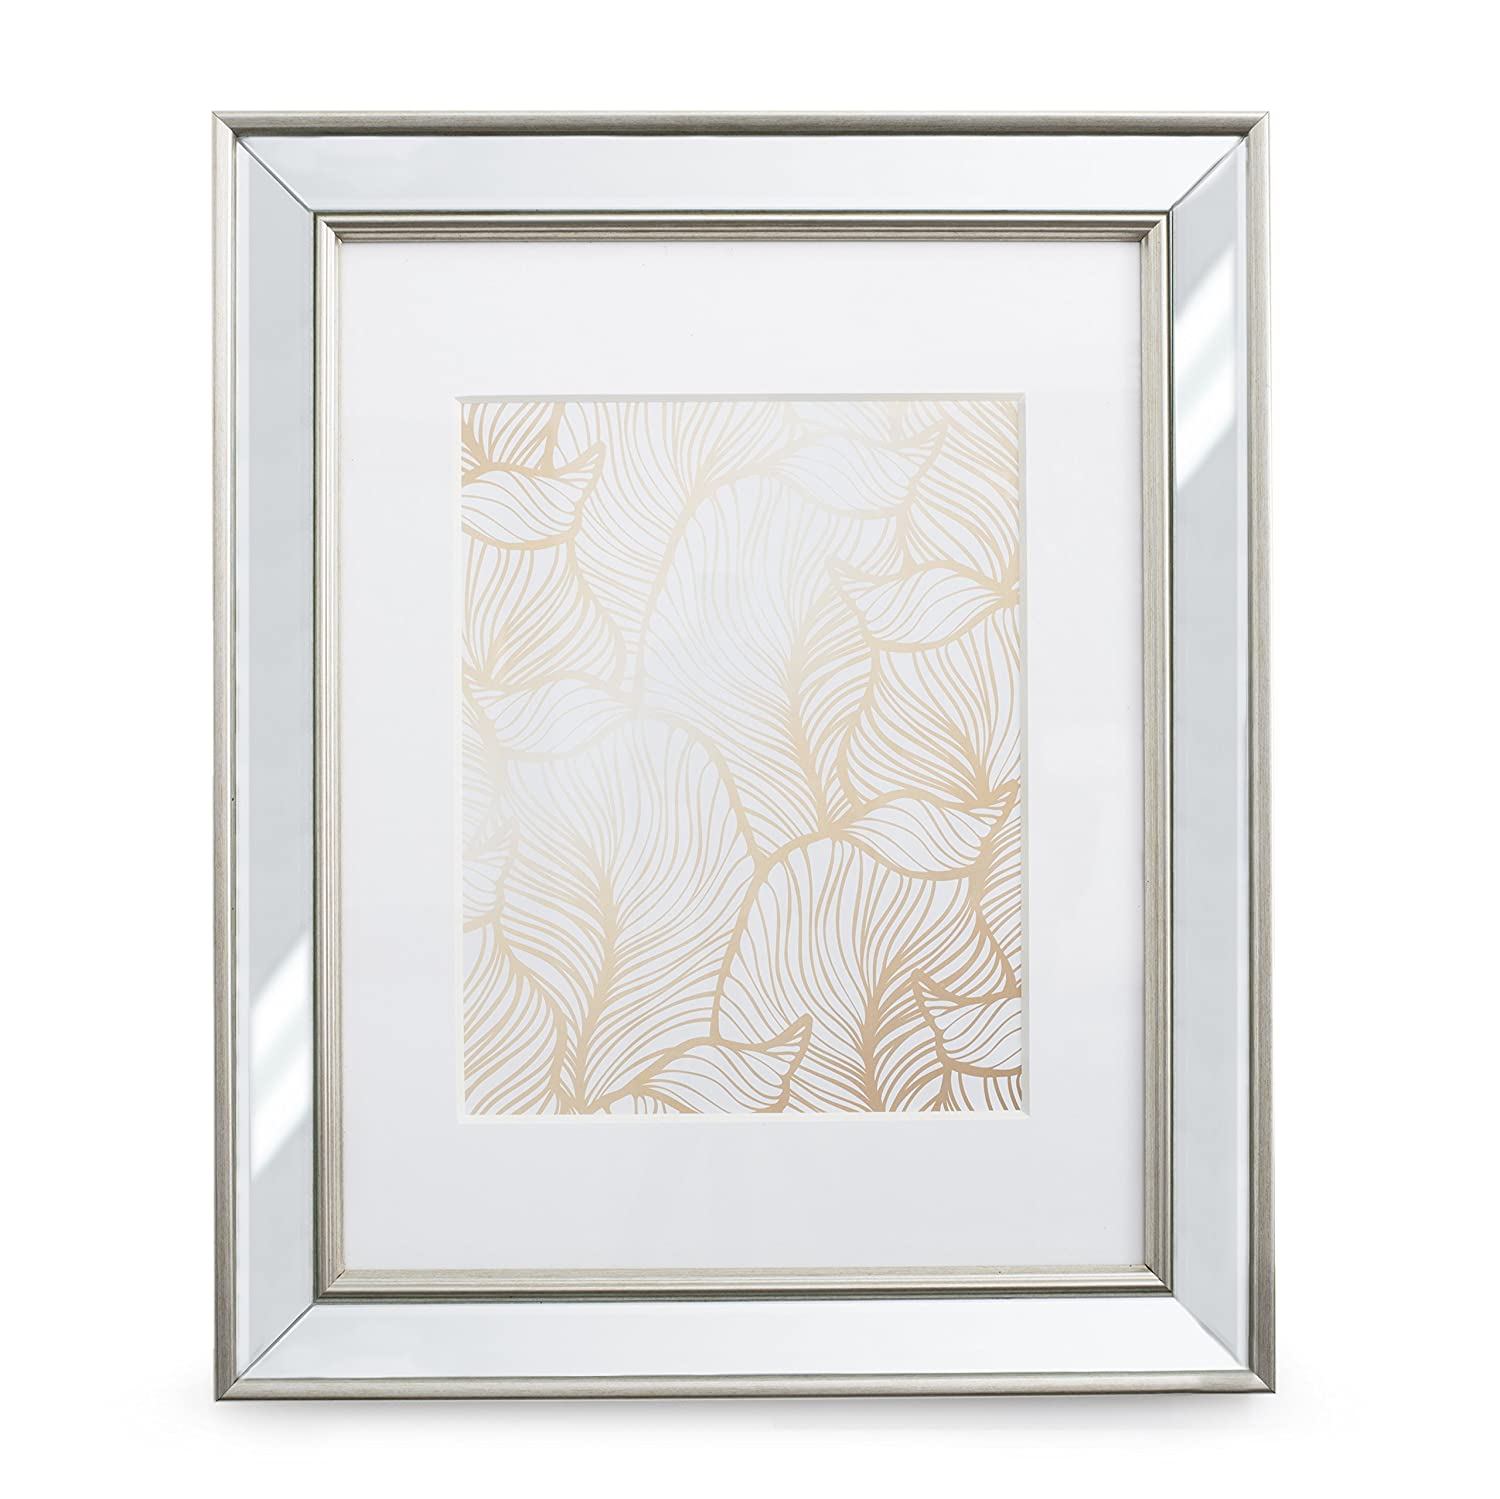 Amazon 11x14 mirrored picture frame matted to 8x10 frames amazon 11x14 mirrored picture frame matted to 8x10 frames by ecohome jeuxipadfo Image collections